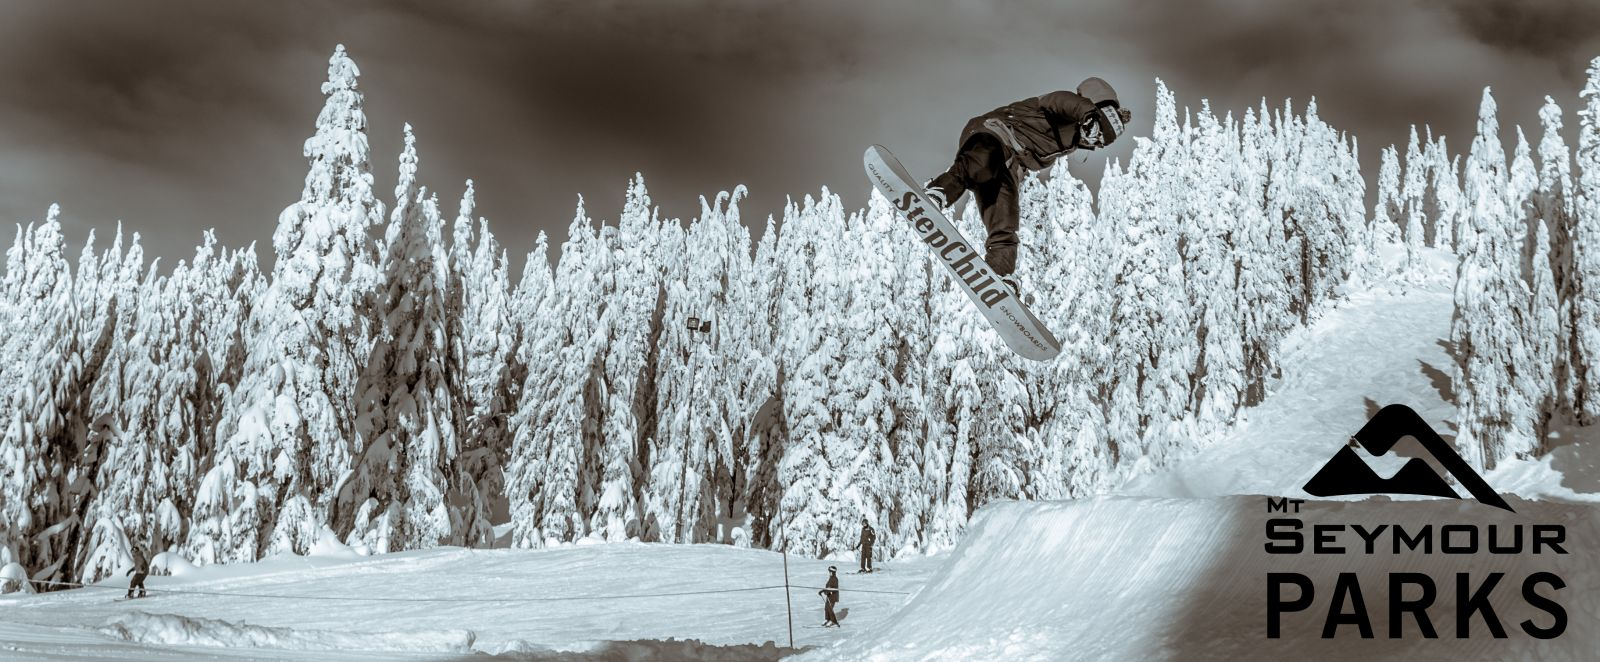 Snowboarder at Mt Seymour in Vancouver